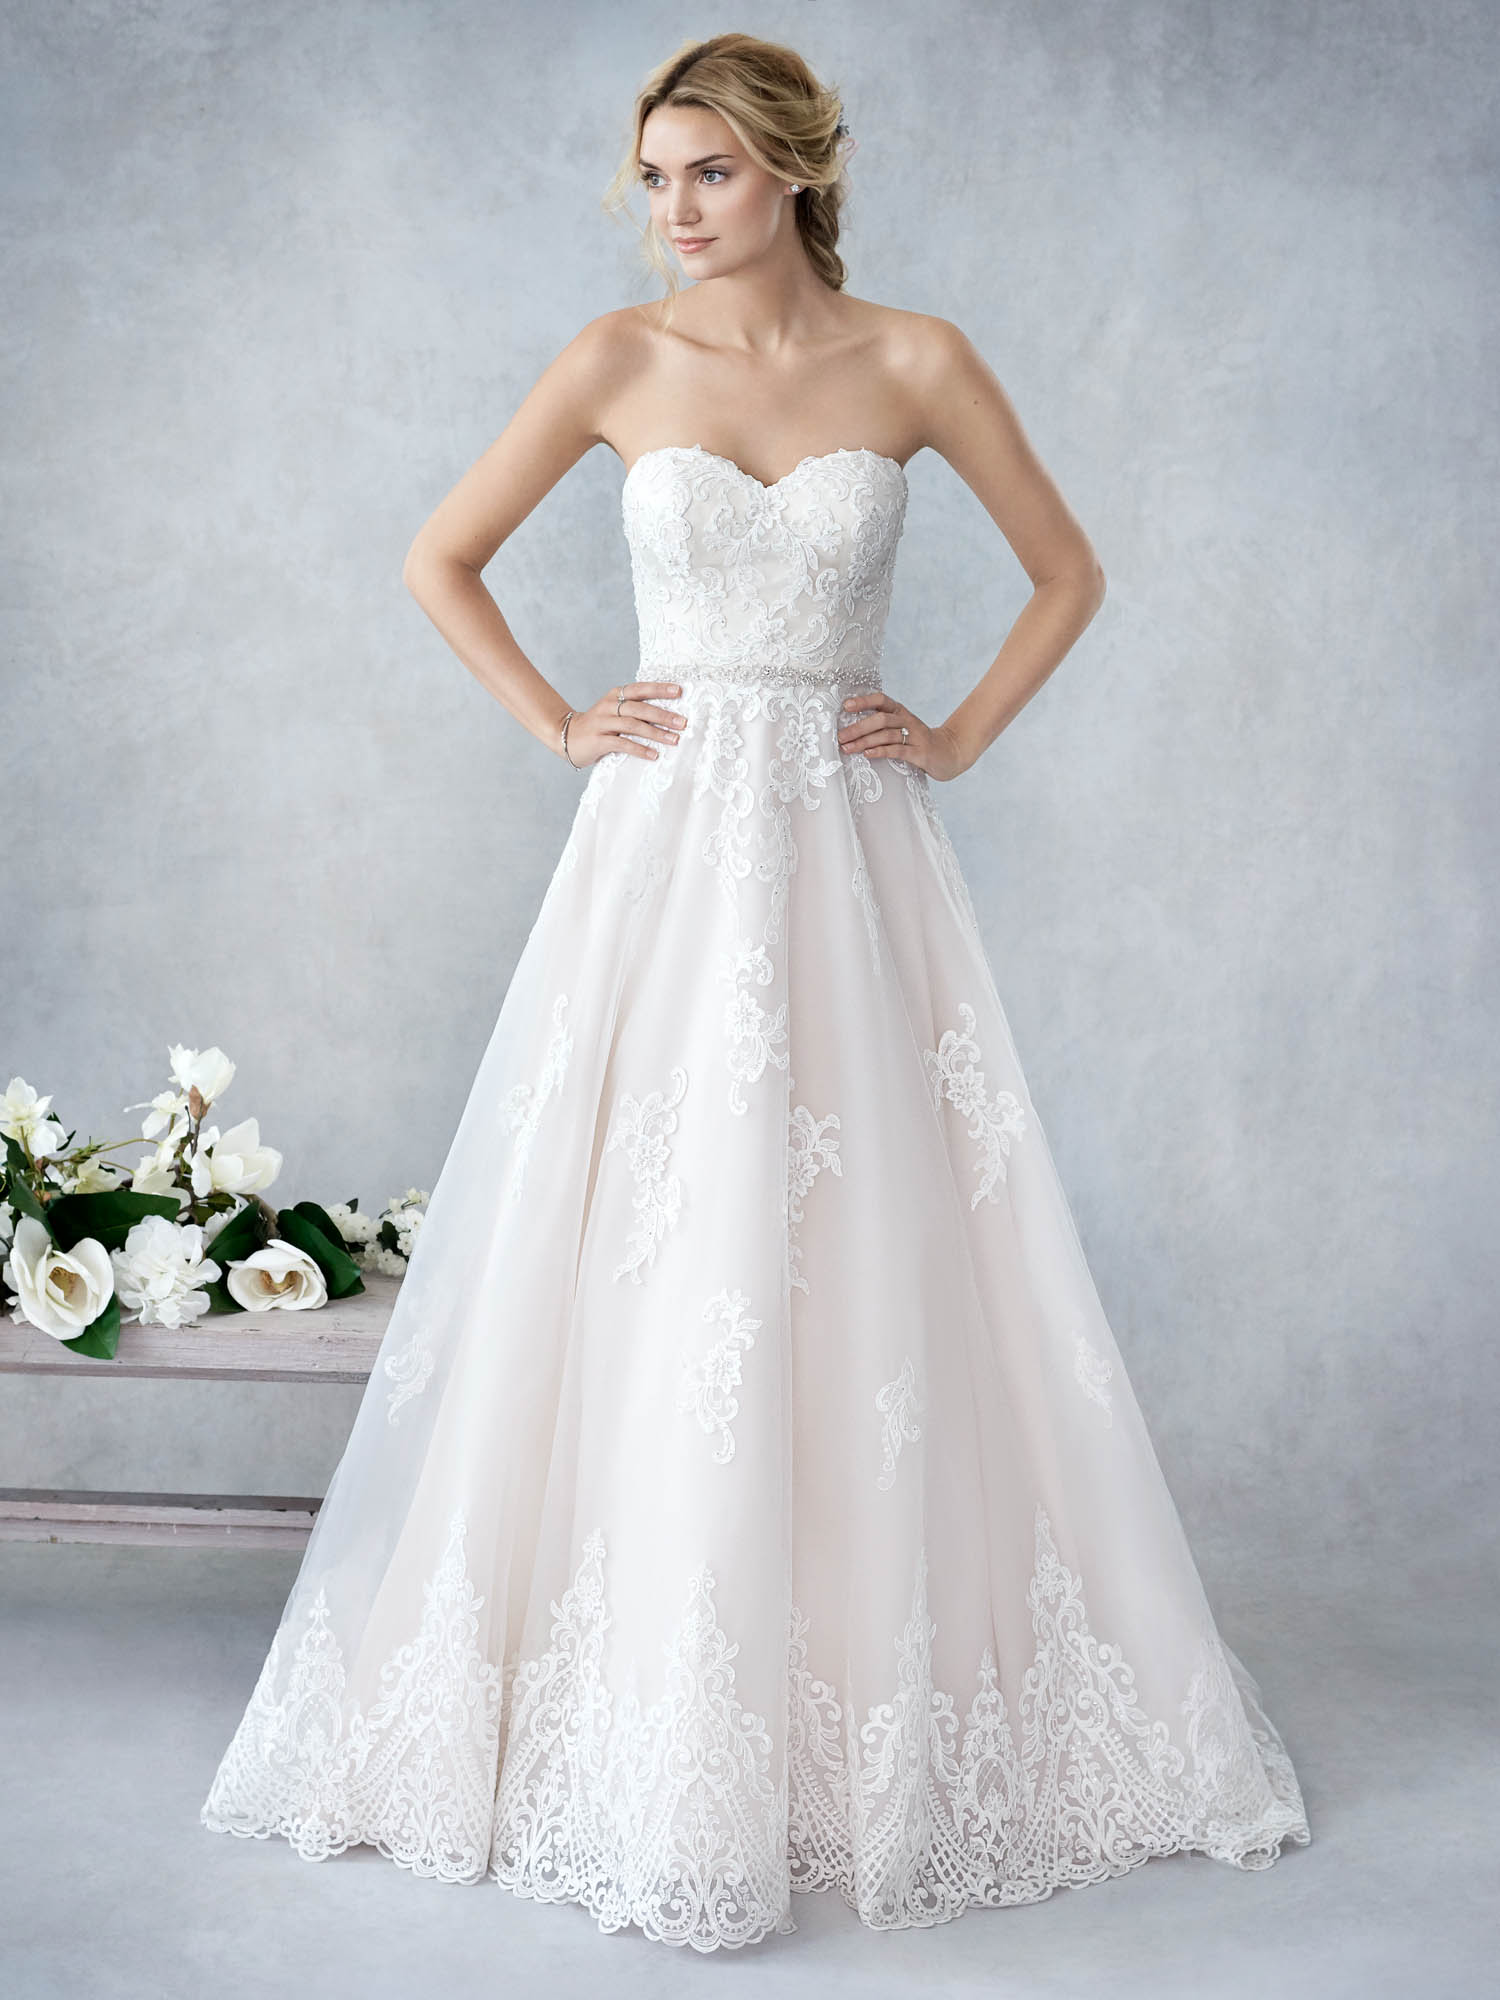 794a13934aaf ella rosa spring 2017 bridal strapless sweetheart neckline wrap over bodice  simple layer skirt ball gown a line wedding dress open back chapel train ( 376) .